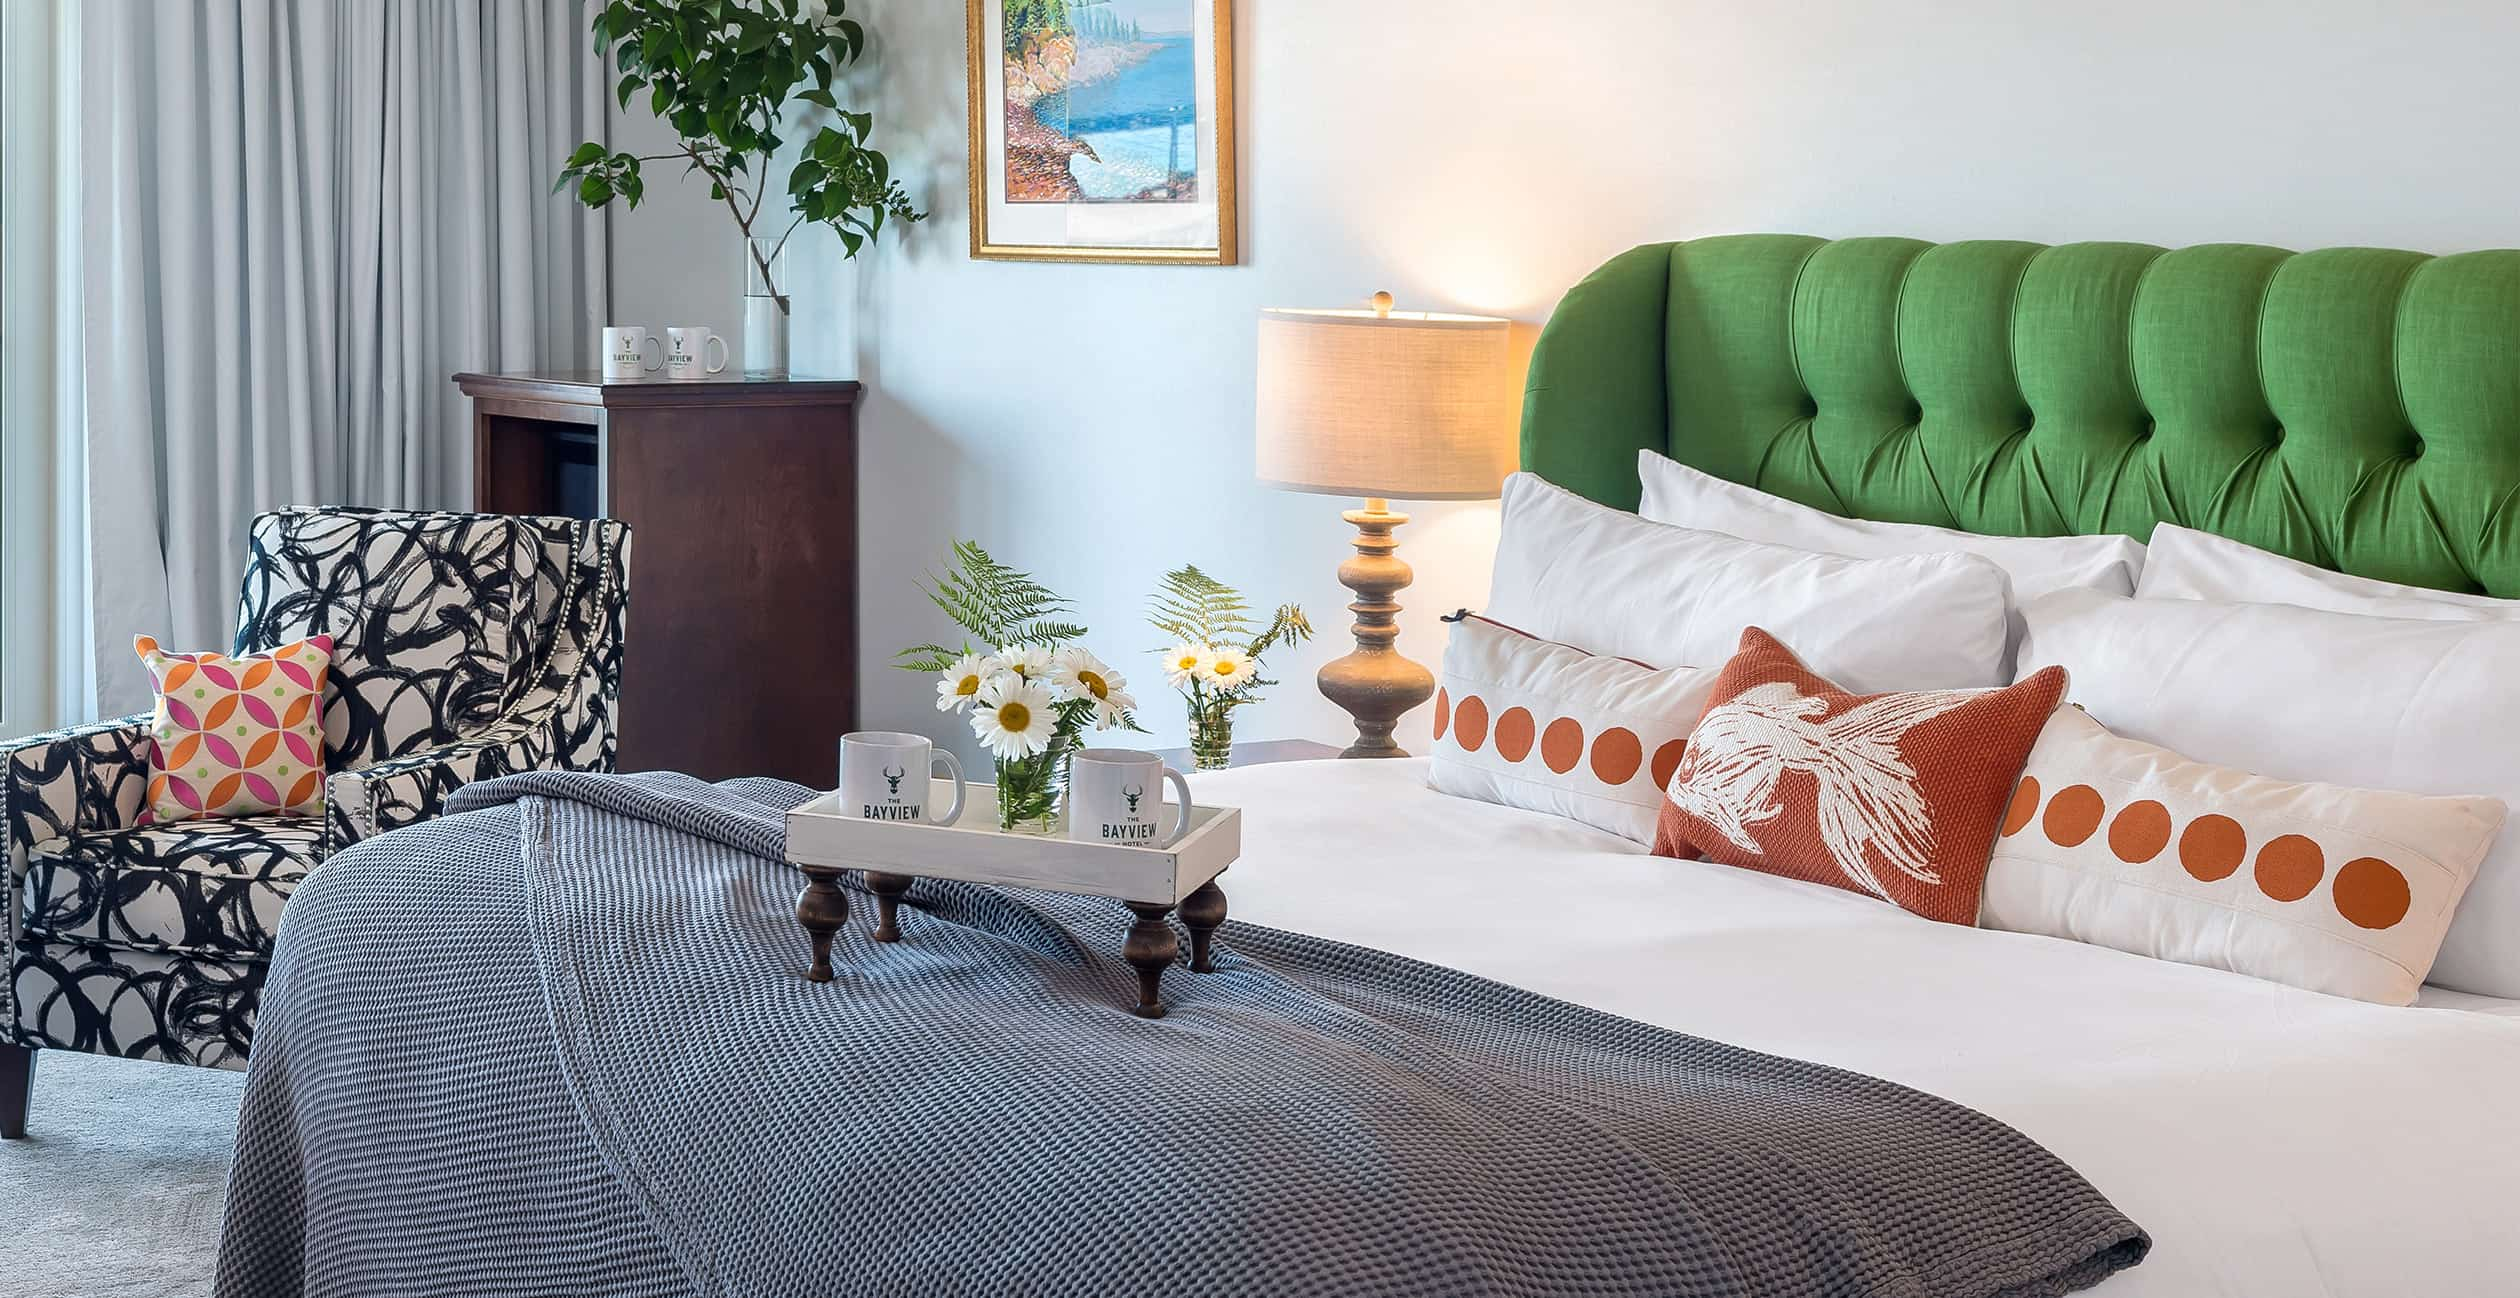 King bed with green headboard and clean linens